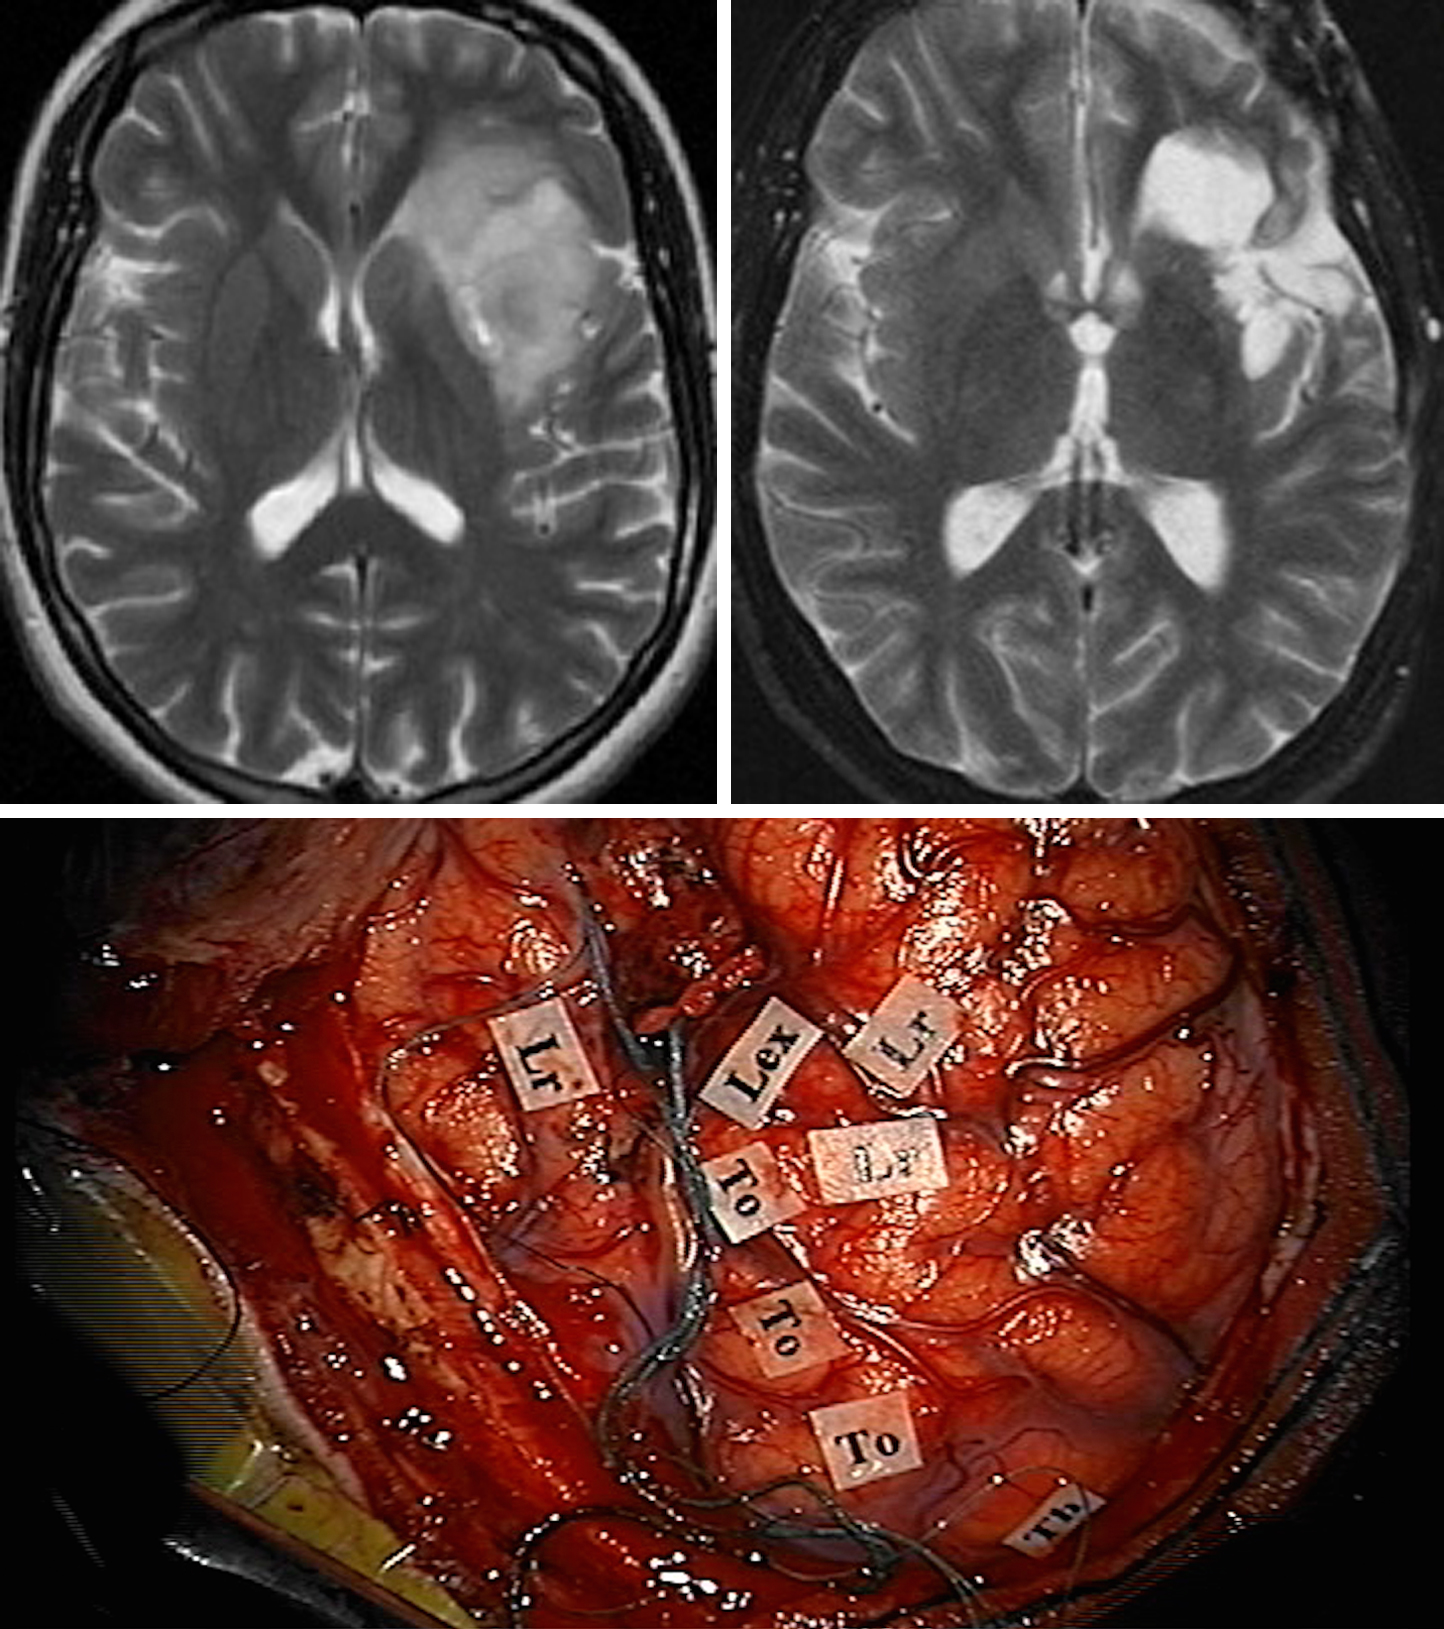 Figure 14: Resection of a diffuse dominant insular tumor through a combined trans-Sylvian and transcortical approach is demonstrated. The left and right upper images demonstrate the pre- and postoperative images and corresponding extent of resection. The lower photo illustrates the functional map in preparation for creating corticotomies within the inferior frontal and superior temporal gyri to reach the extensions of the tumor underneath the opercula.